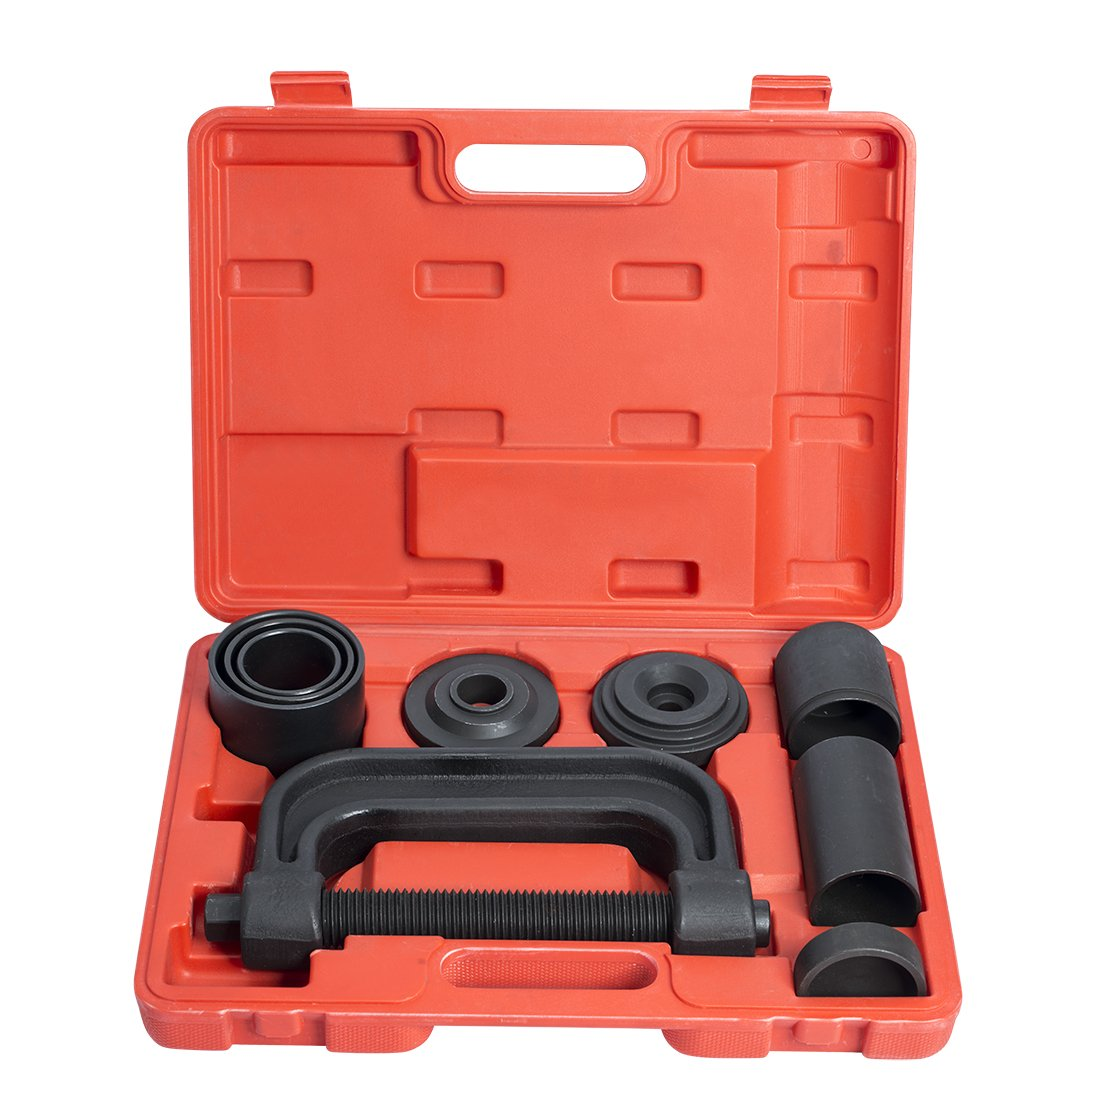 WORKPRO 4-in-1 Ball Joint Service Tool Kit 2WD & 4WD Remover Installer with 4-Wheel Drive Adapters by WORKPRO (Image #5)